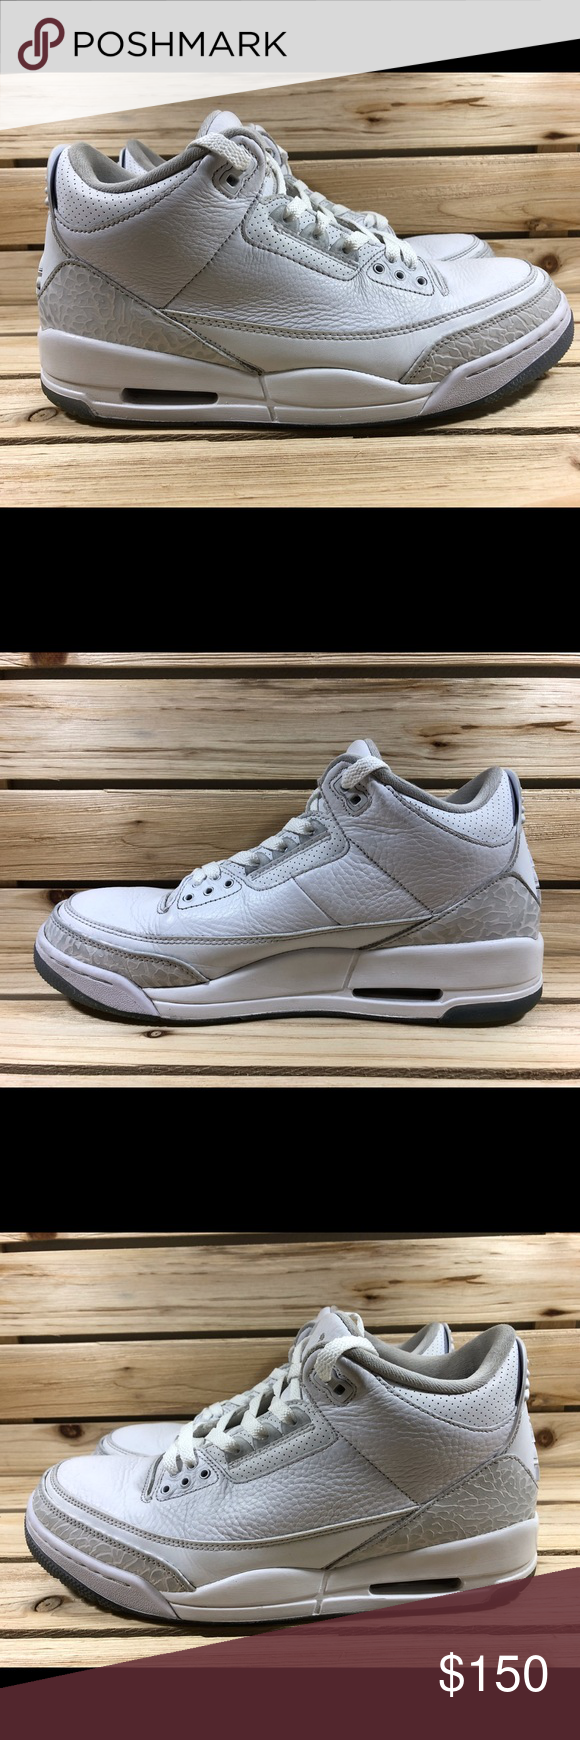 515ef2b8775103 Nike Air Jordan Retro 3 Triple White Product  Nike Air Jordan III 3 Triple  White